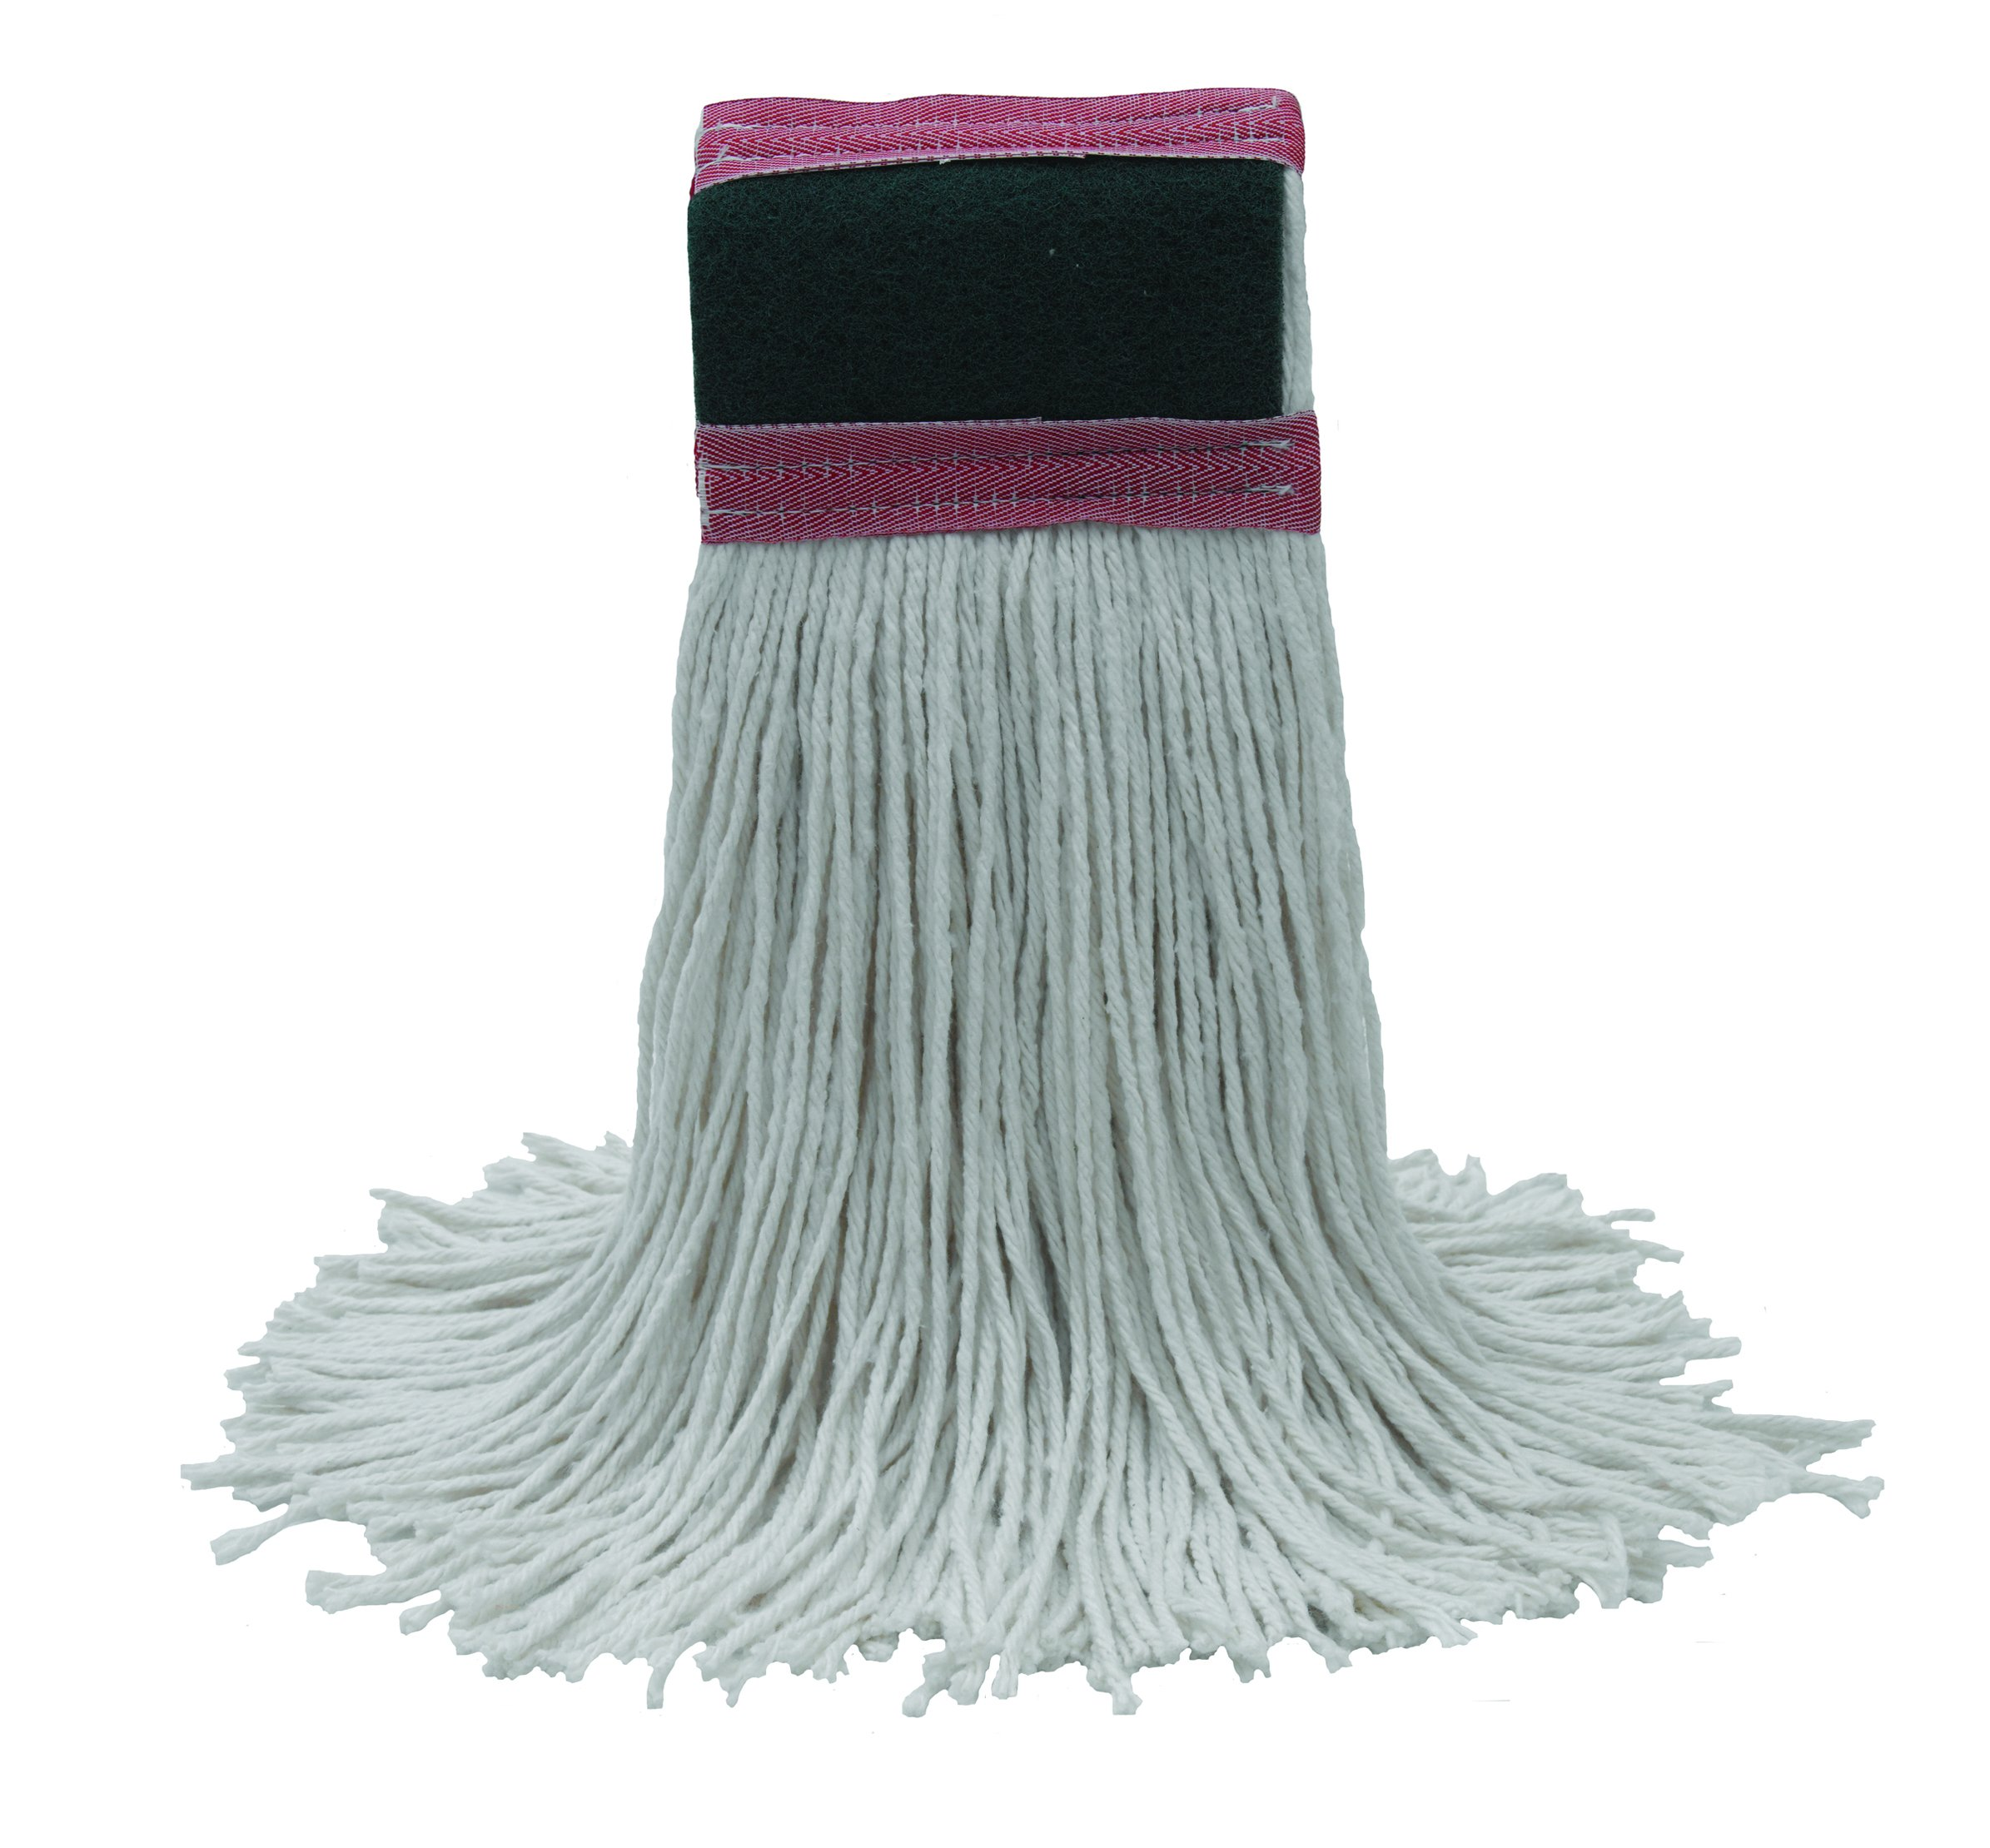 O'Cedar Commercial 97757 Neptune Rayon Mop with Scrub Pad, 24 oz (Pack of 12)